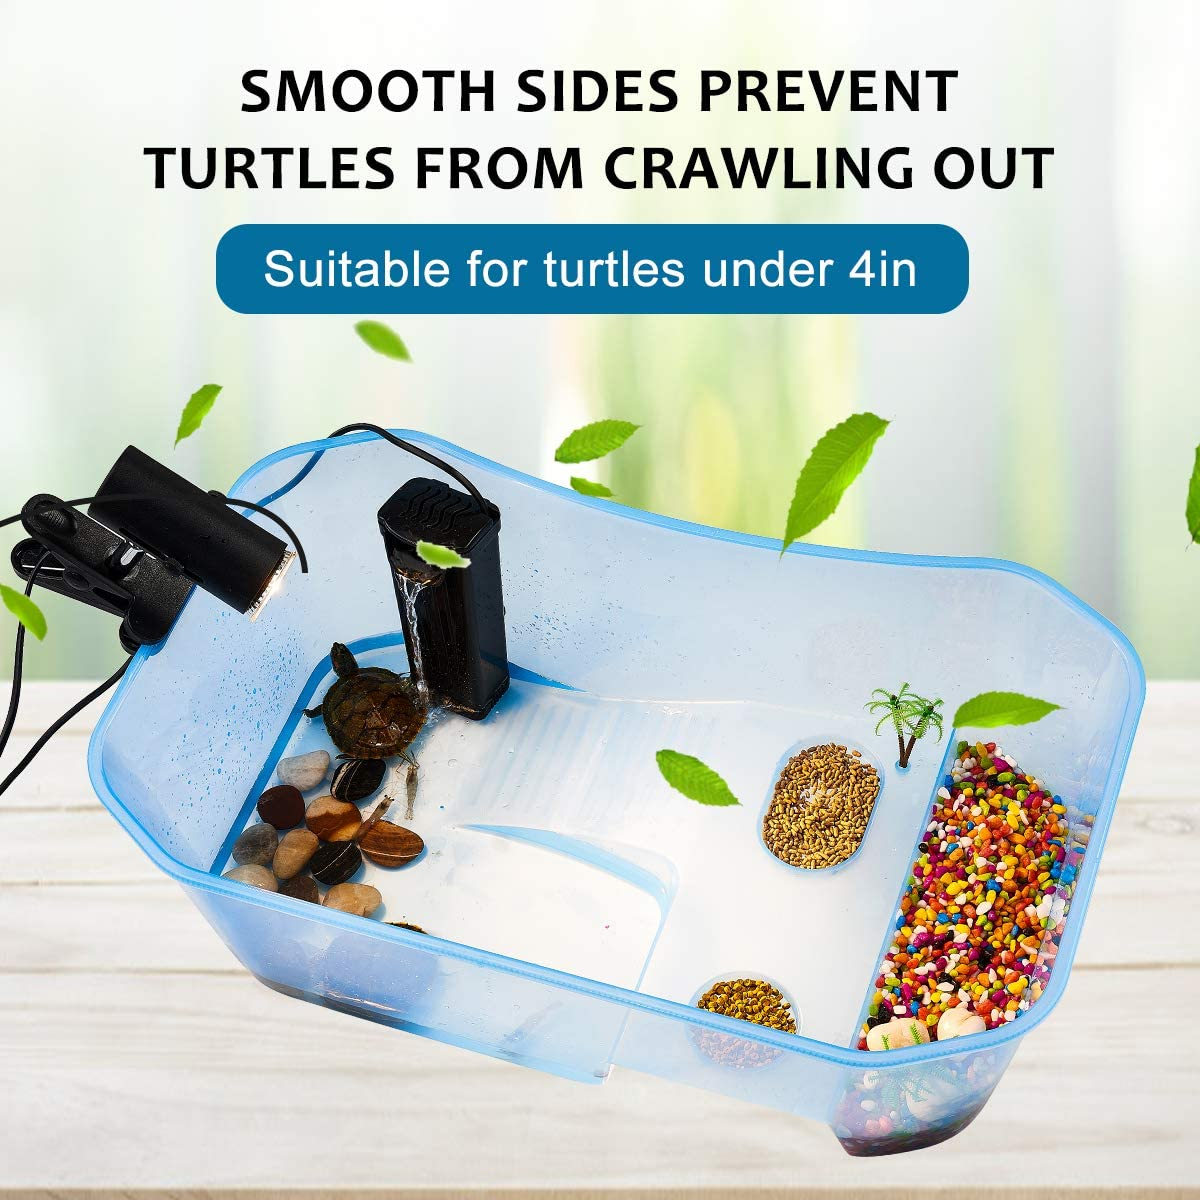 with Platform Plants Feeding Area is a Perfect Reptile Habitat PETLAOO Turtle Tank Aquarium-Turtle basking Platform,Swimming Area breeding Hibernation Area